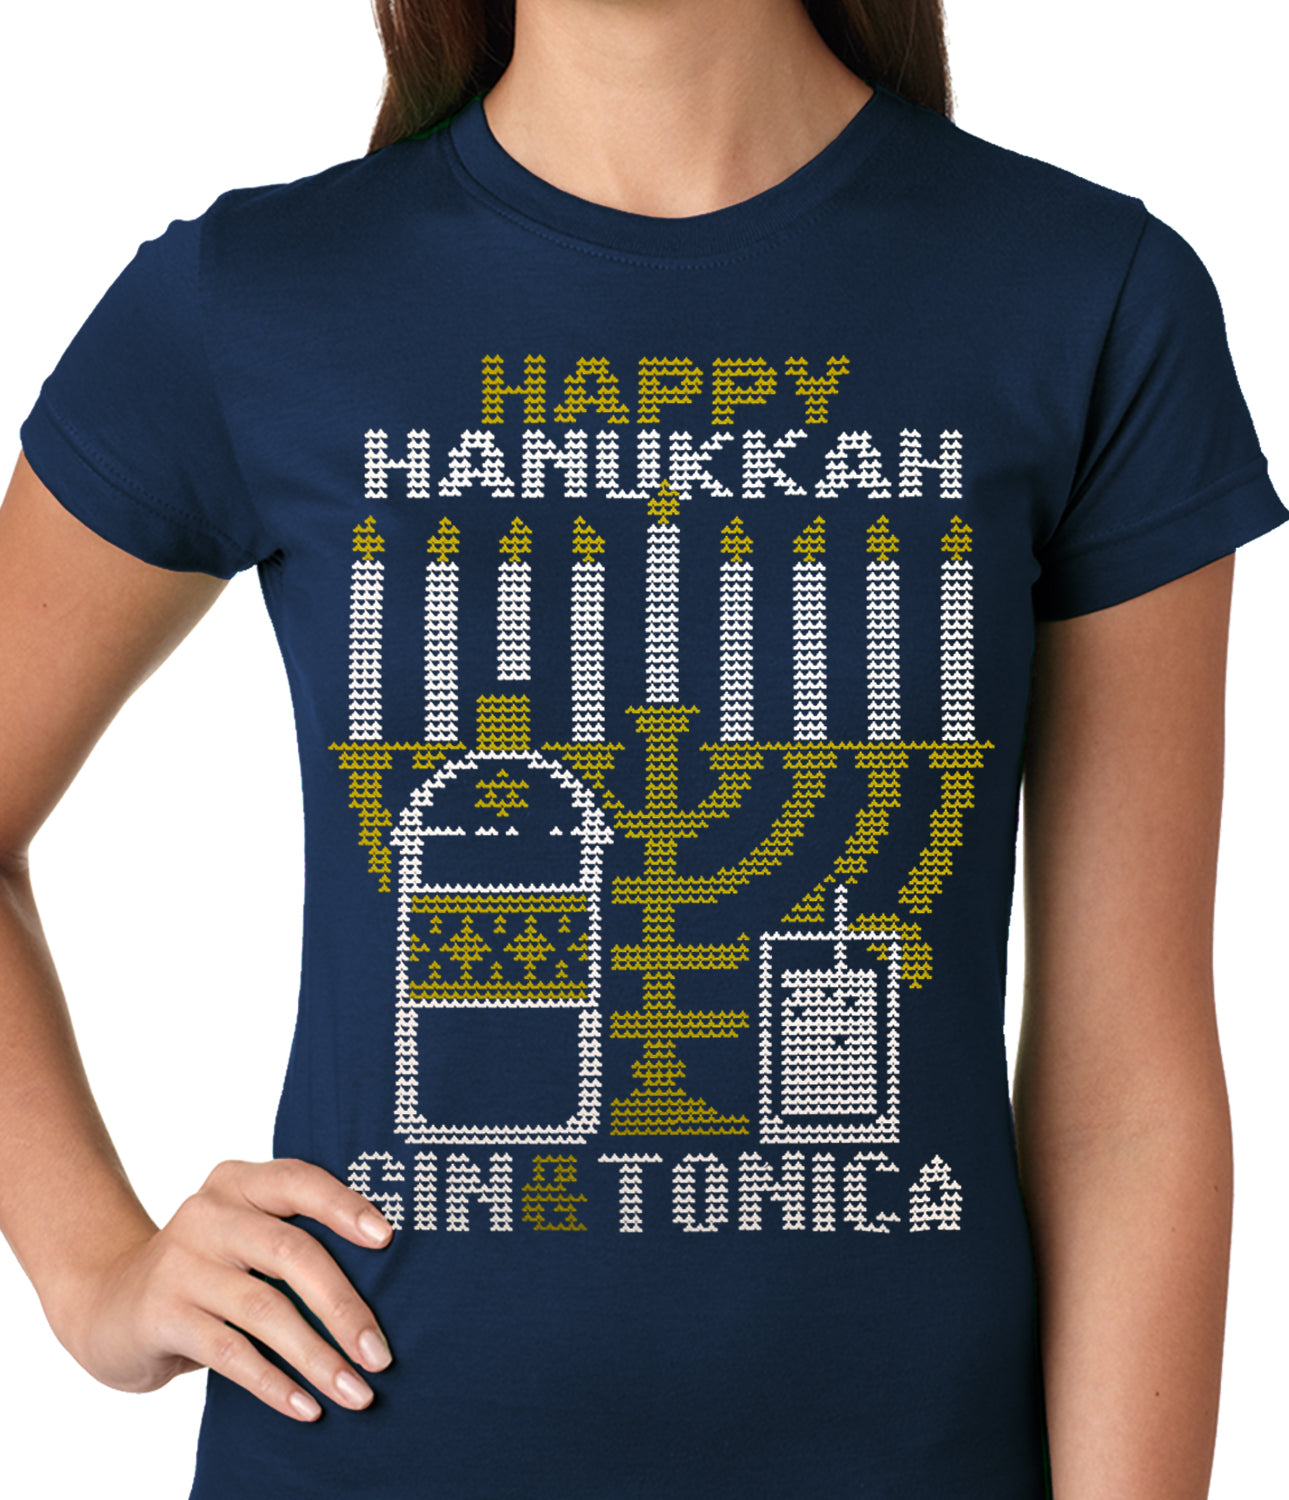 Ugly Hanukkah Tee - Gin and Tonica Golden Menorah Ugly Hanukkah Ladies T-shirt